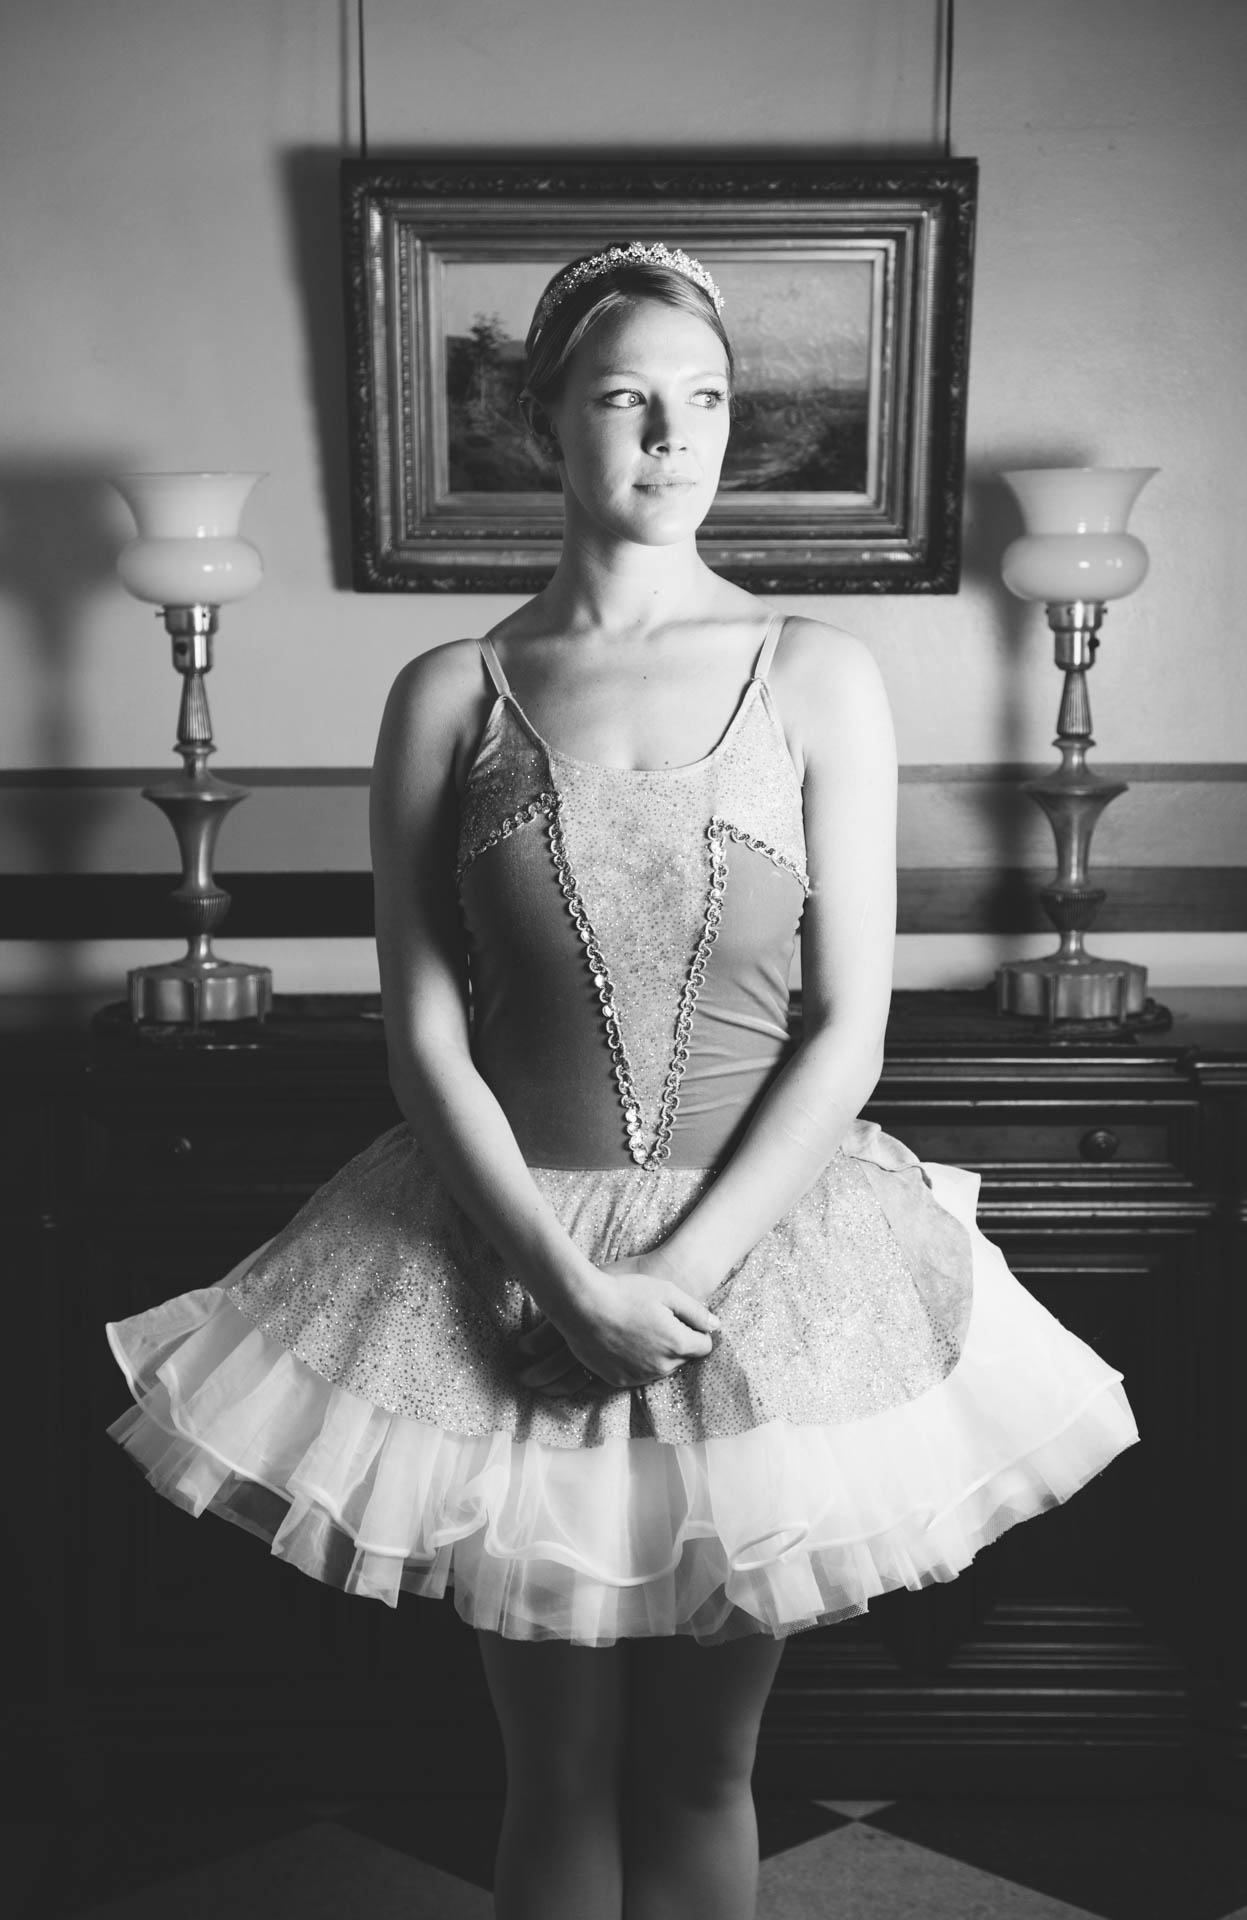 jenika-ballerina-with-crown-vintage-room-with-antiques-portrait-9462